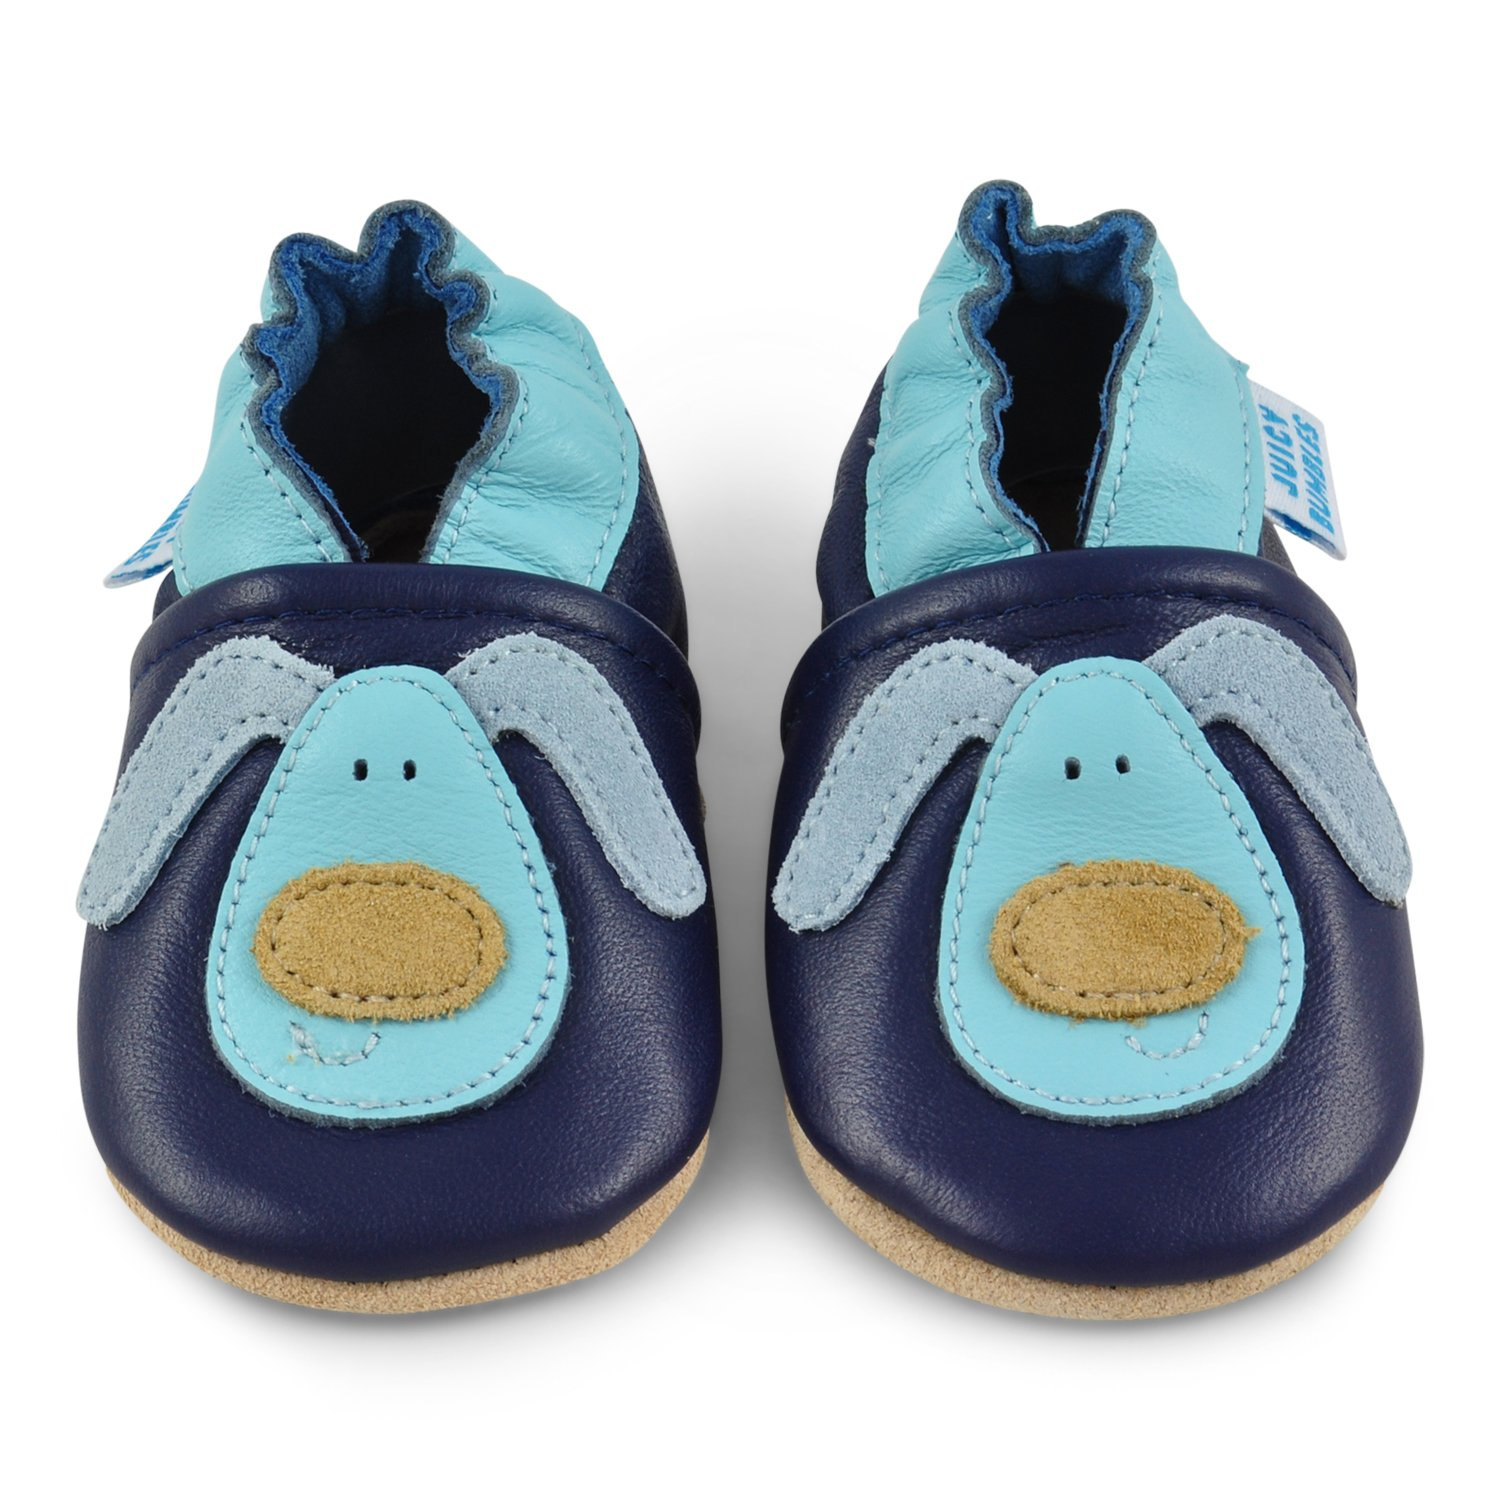 Soft Leather Baby Boy Shoes - Baby Shoes with Suede Soles - Dog 12-18 Months by Juicy Bumbles (Image #2)